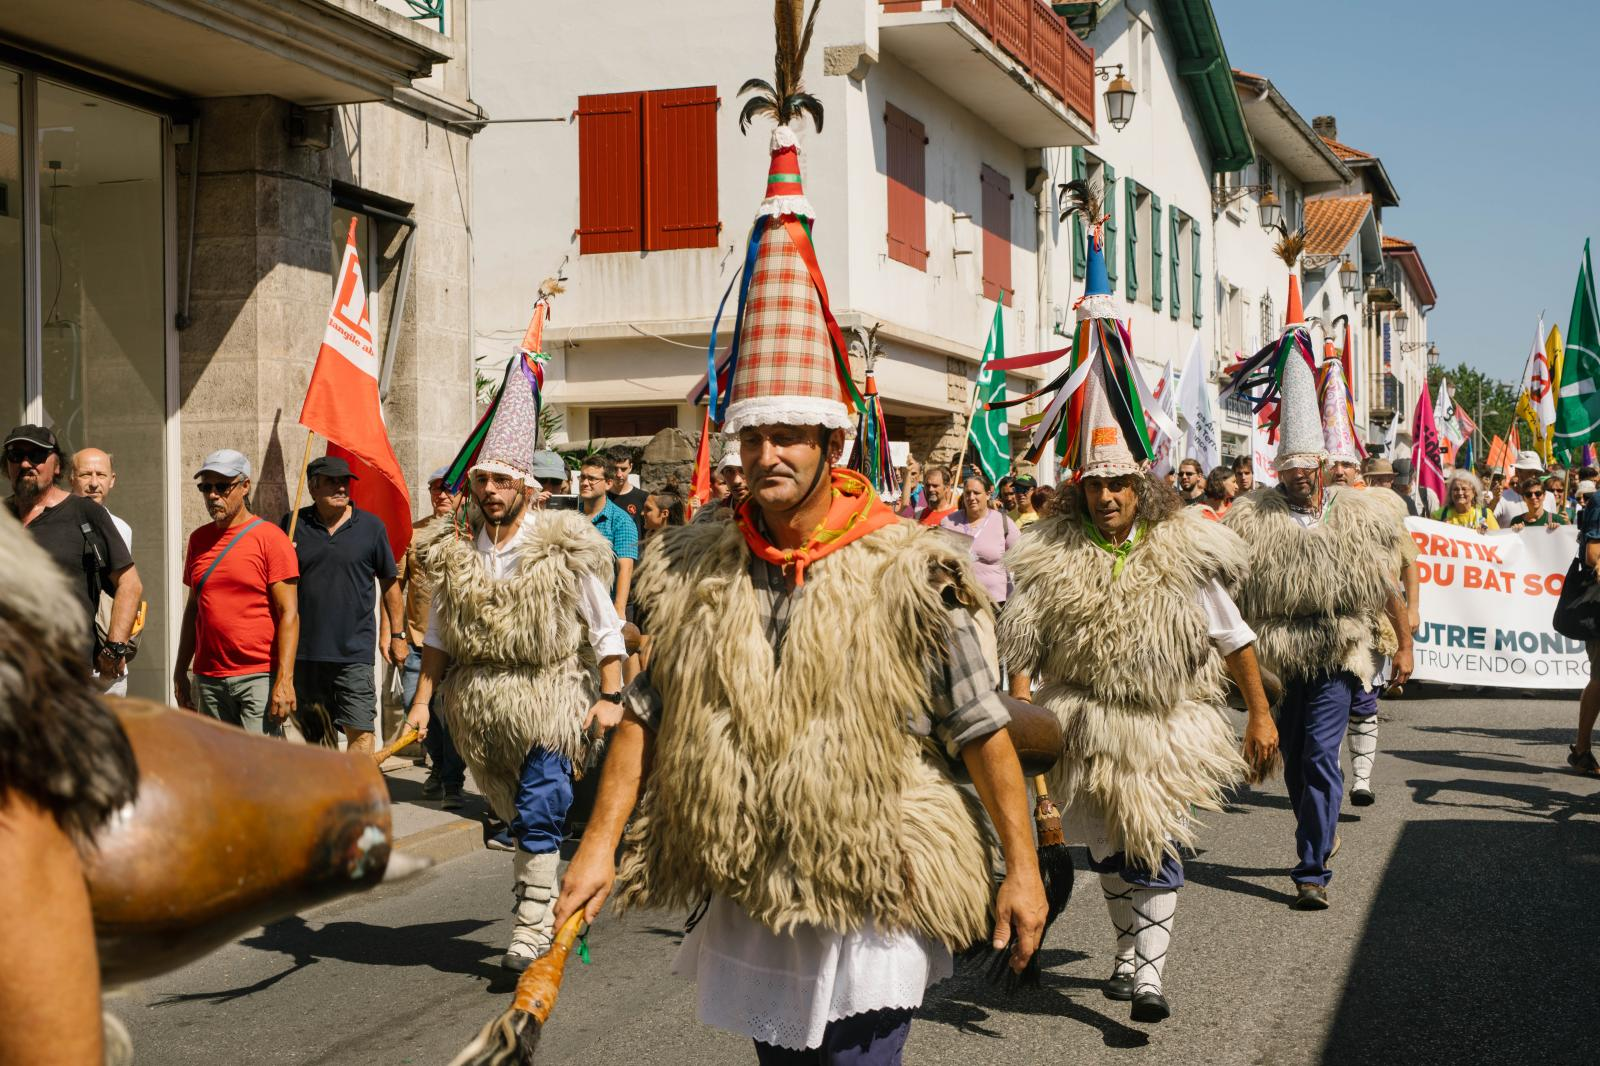 2019-08-24 - Mass demonstration in Hendaye is lead by Basques in traditional costumes.